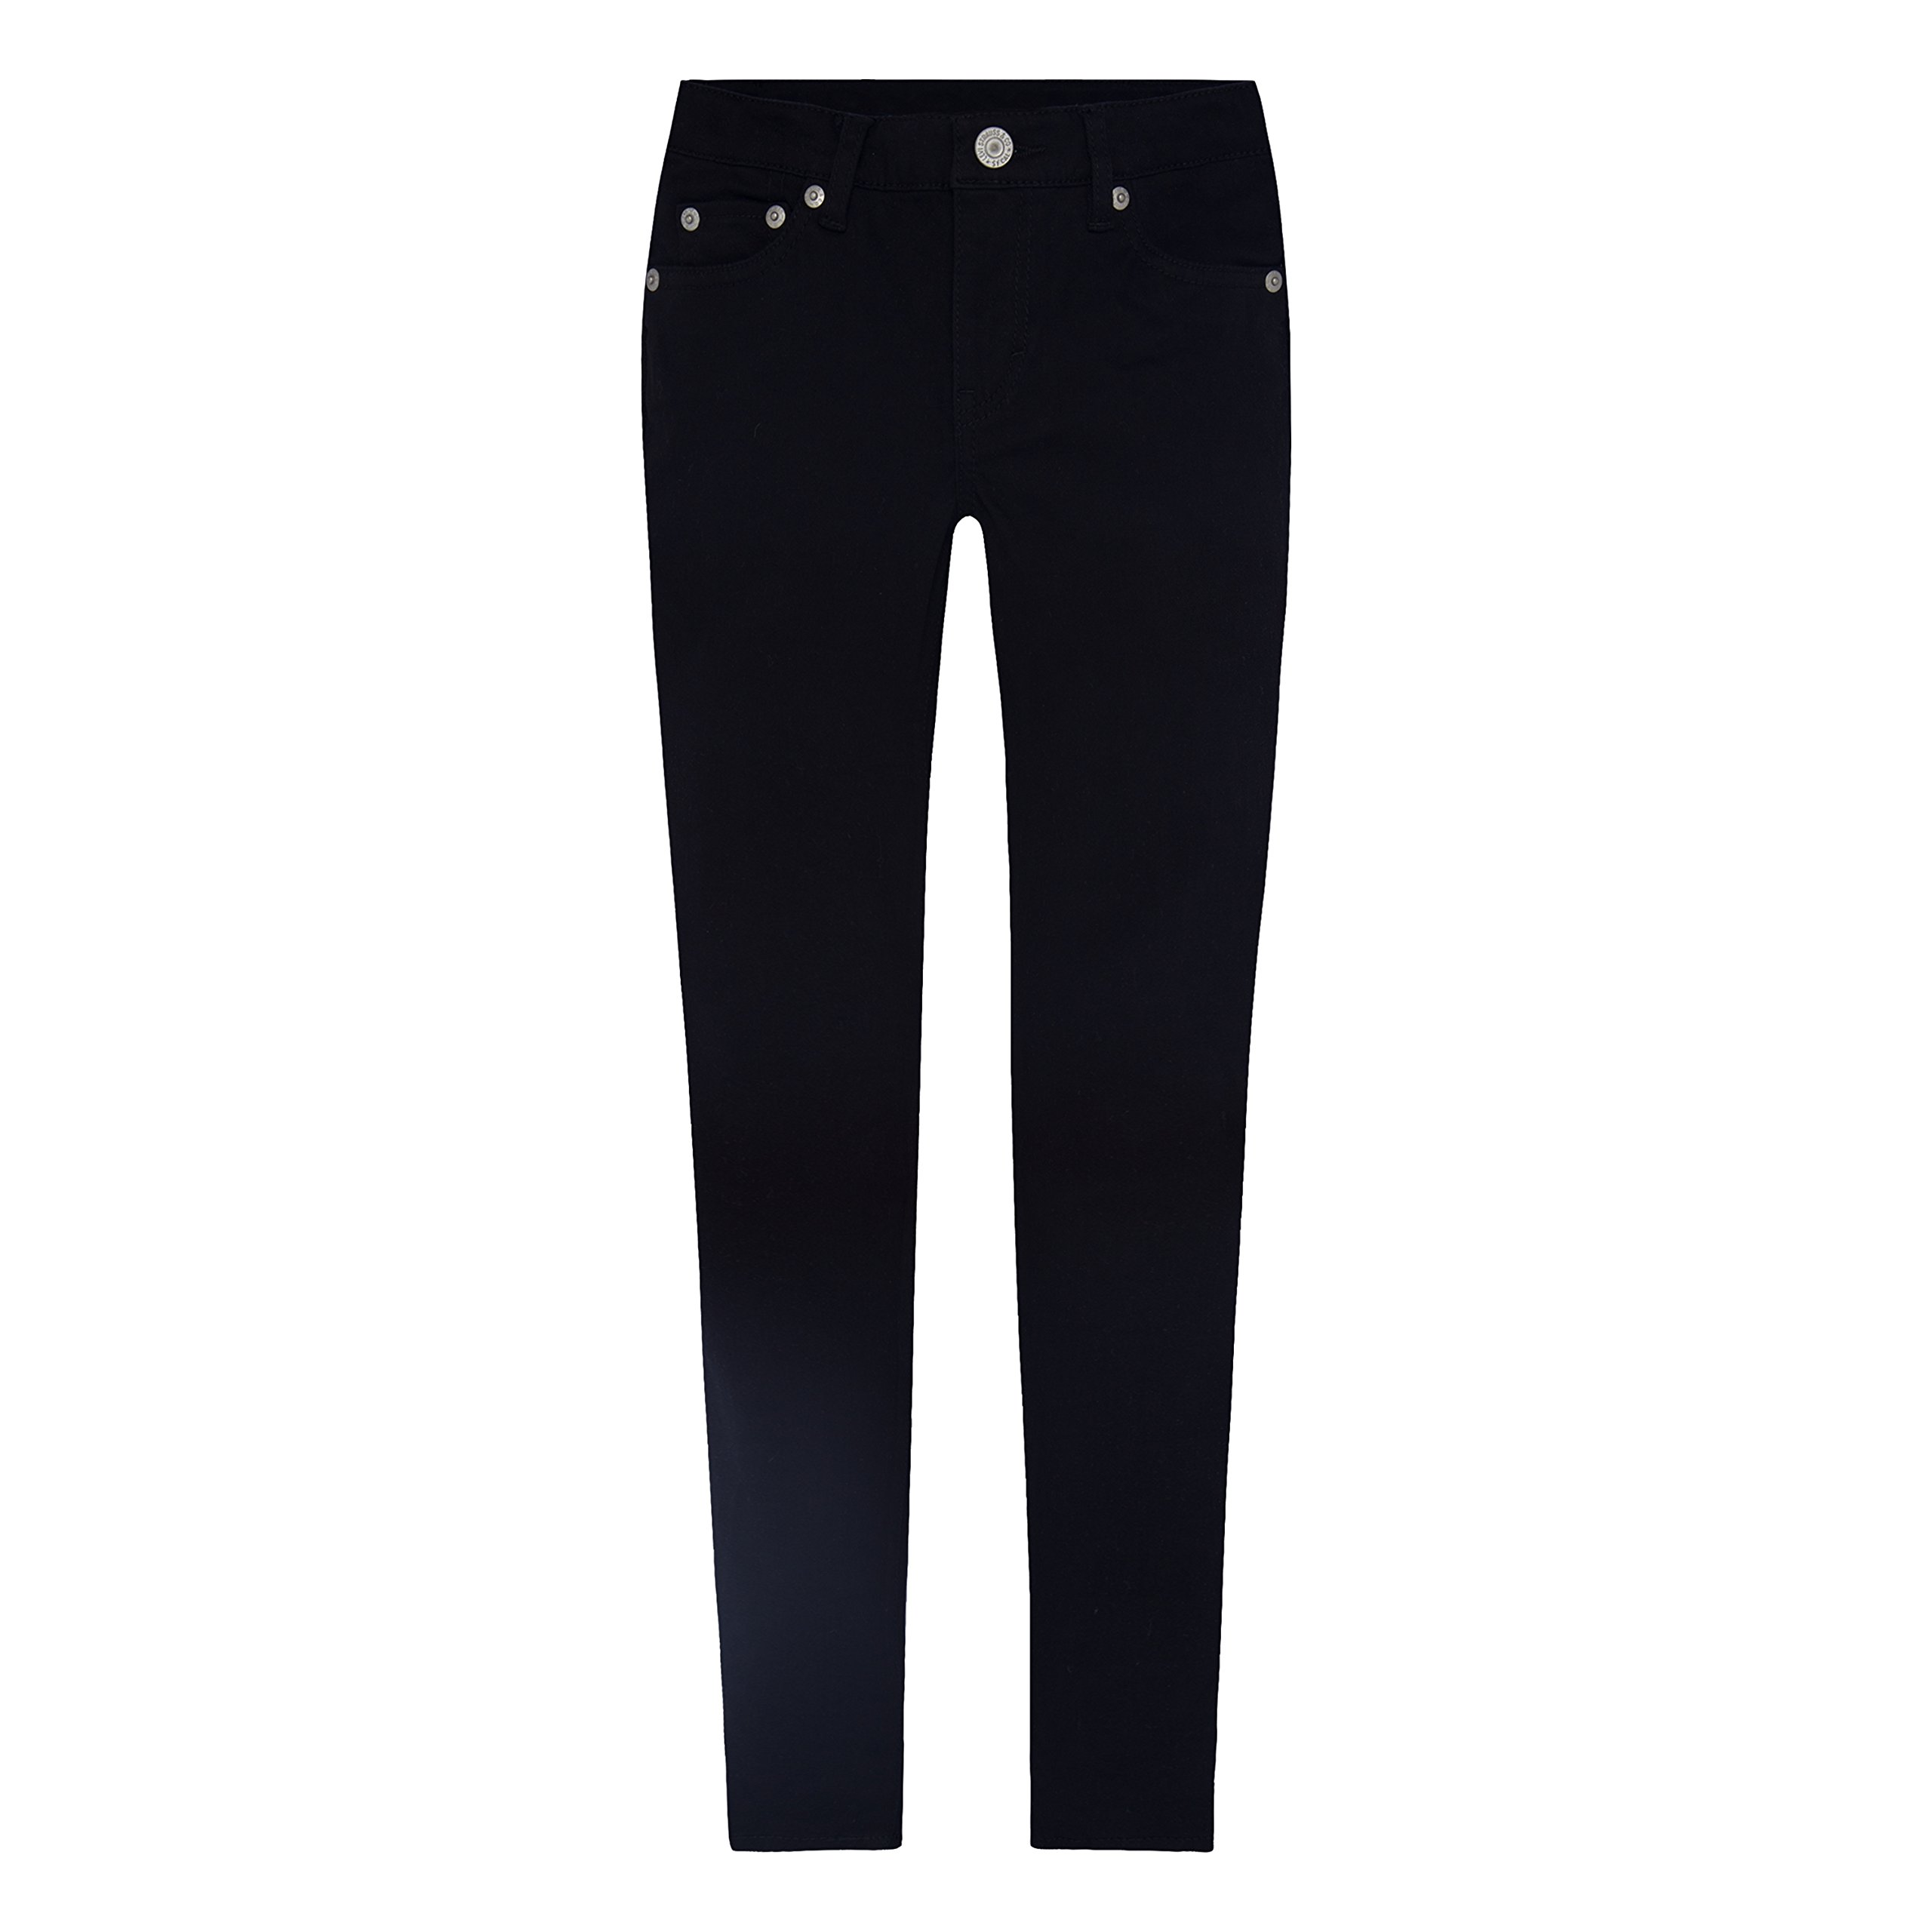 Levi's Girls' 710 Super Skinny Fit Soft Brushed Jeans, Black, 10